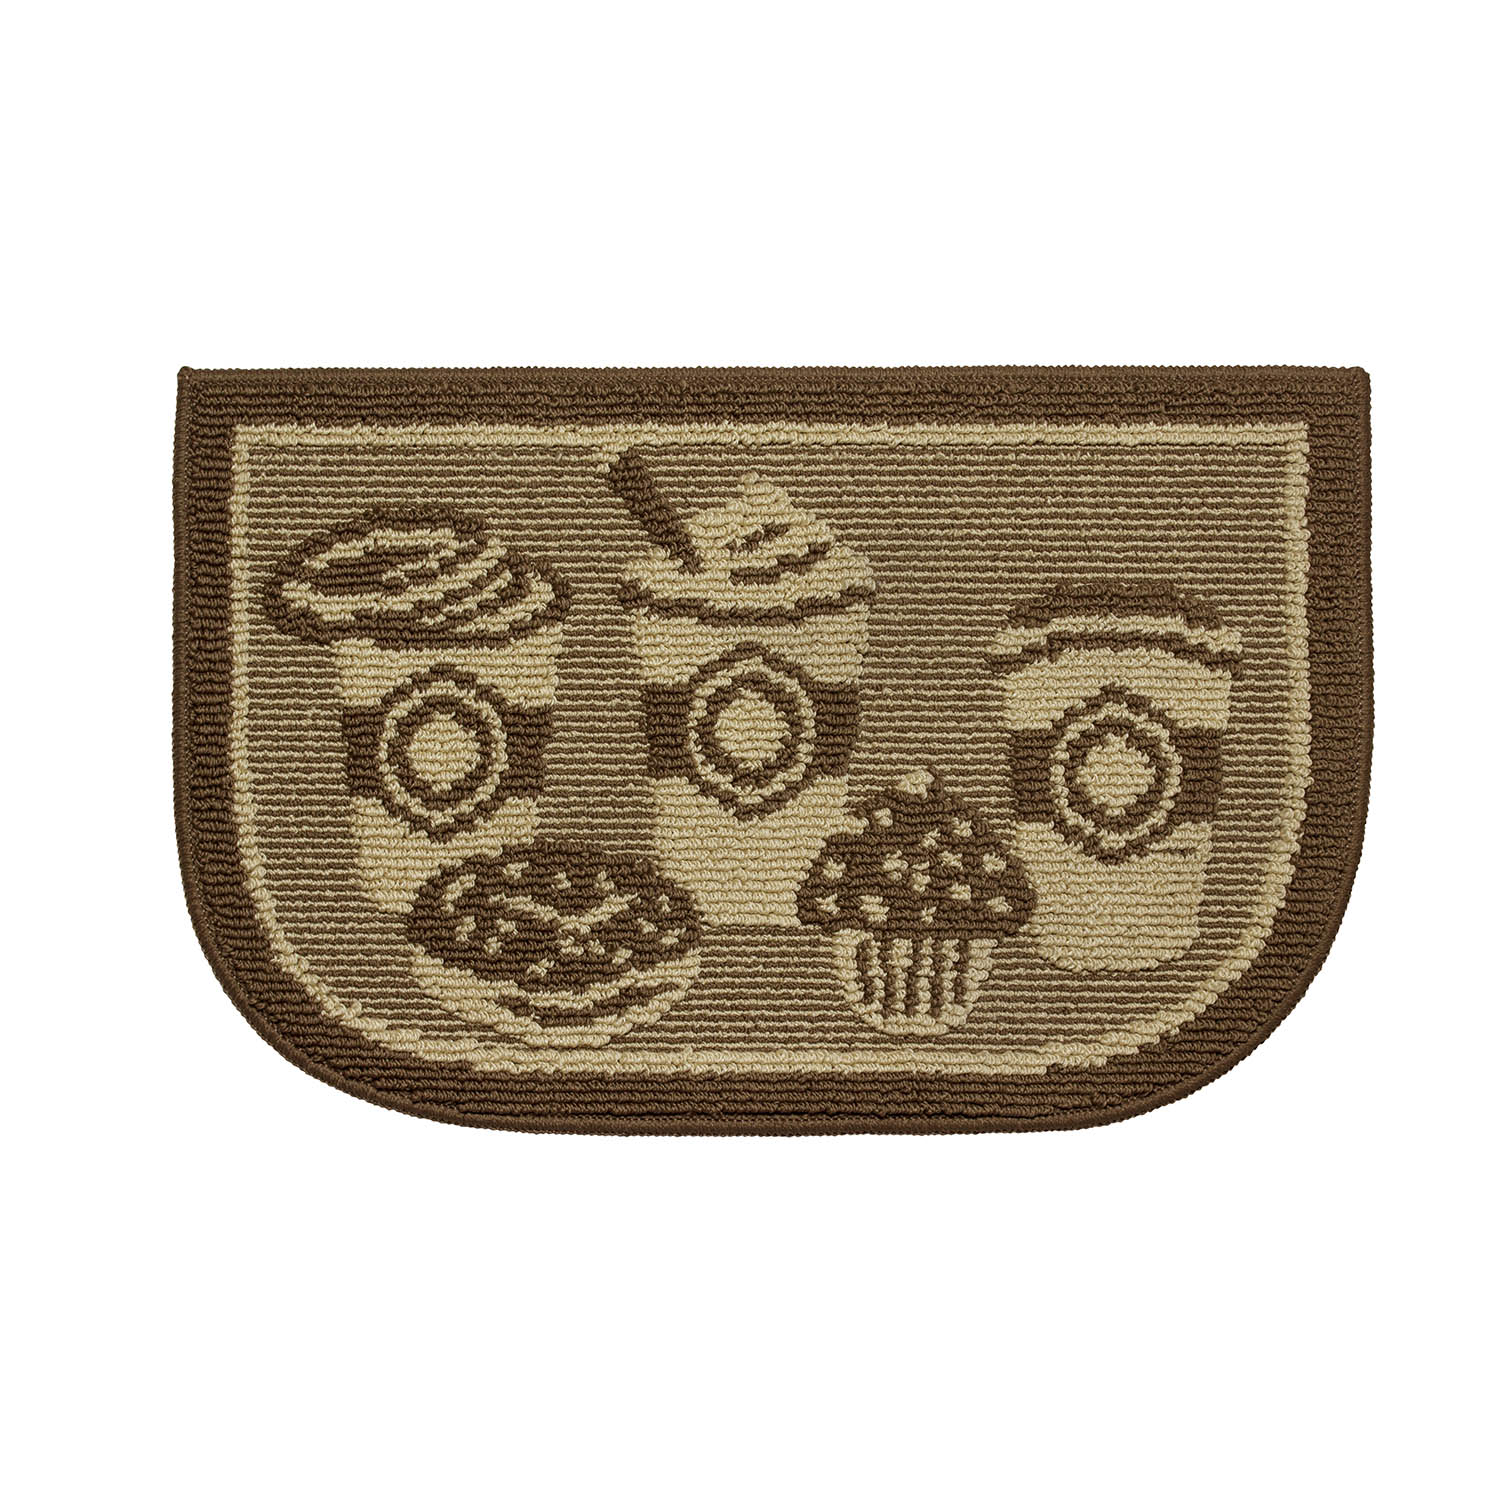 "Structures Textured Loop 18"" x 30"" Wedge-Shaped Kitchen Slice Rug"